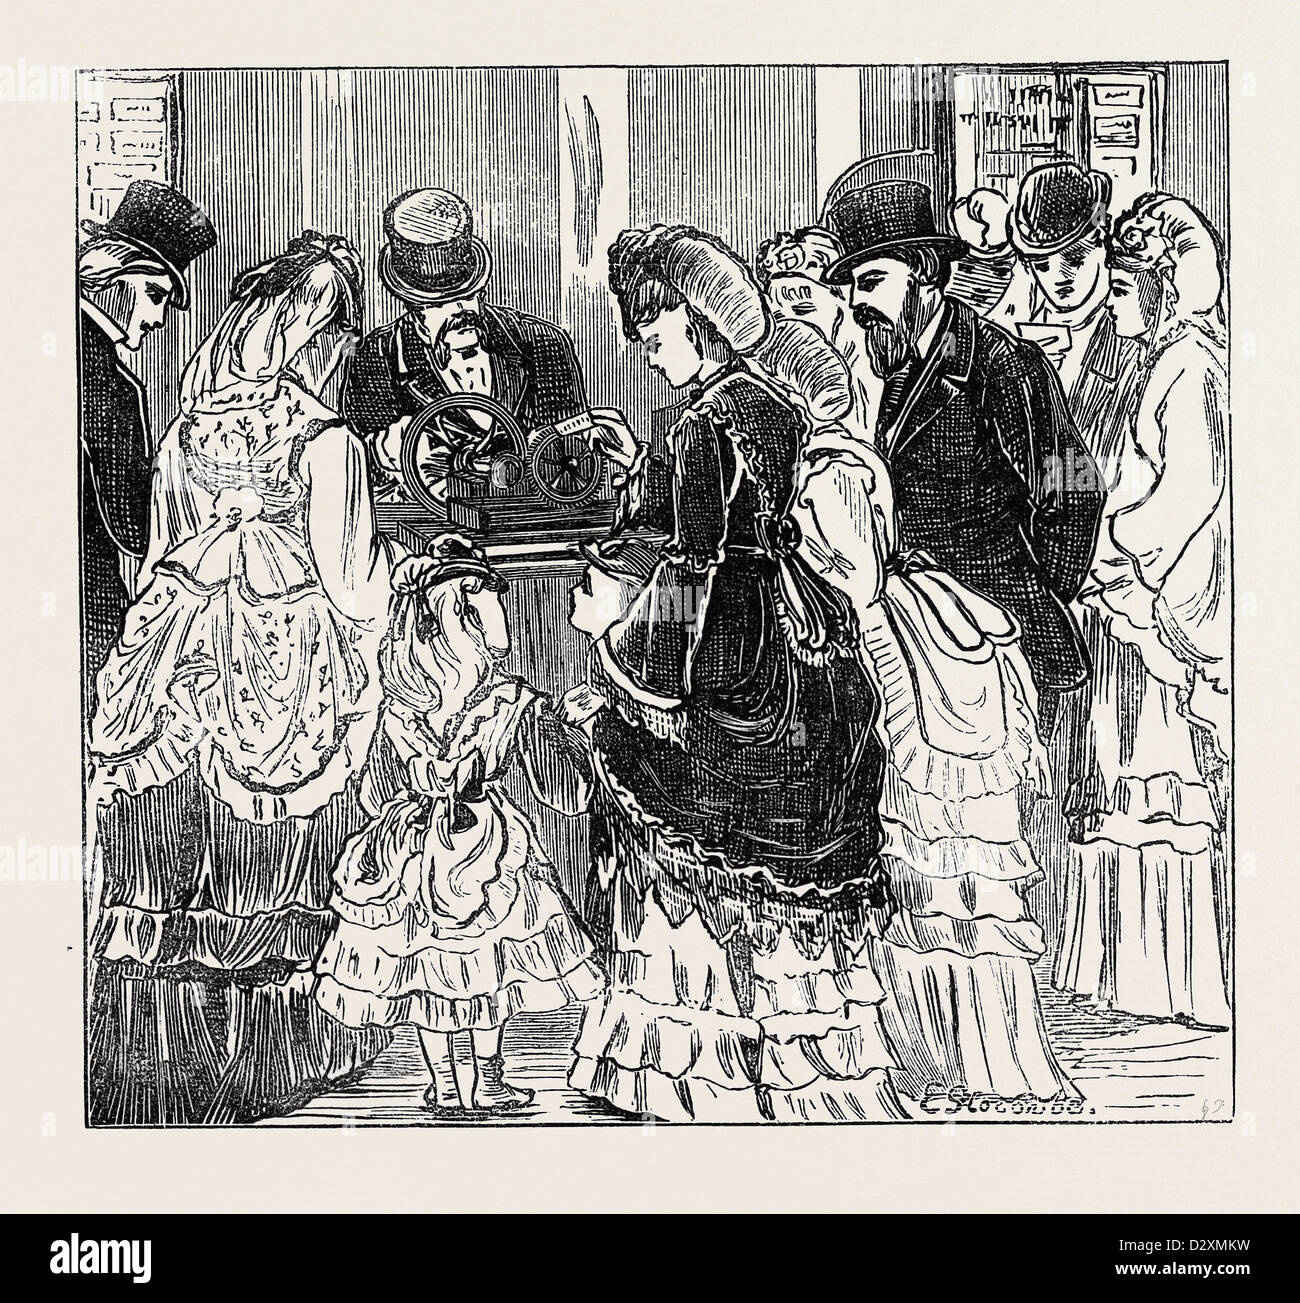 SKETCHES IN THE INTERNATIONAL EXHIBITION: A HUNDRED CARDS IN ONE MINUTE 1871 - Stock Image